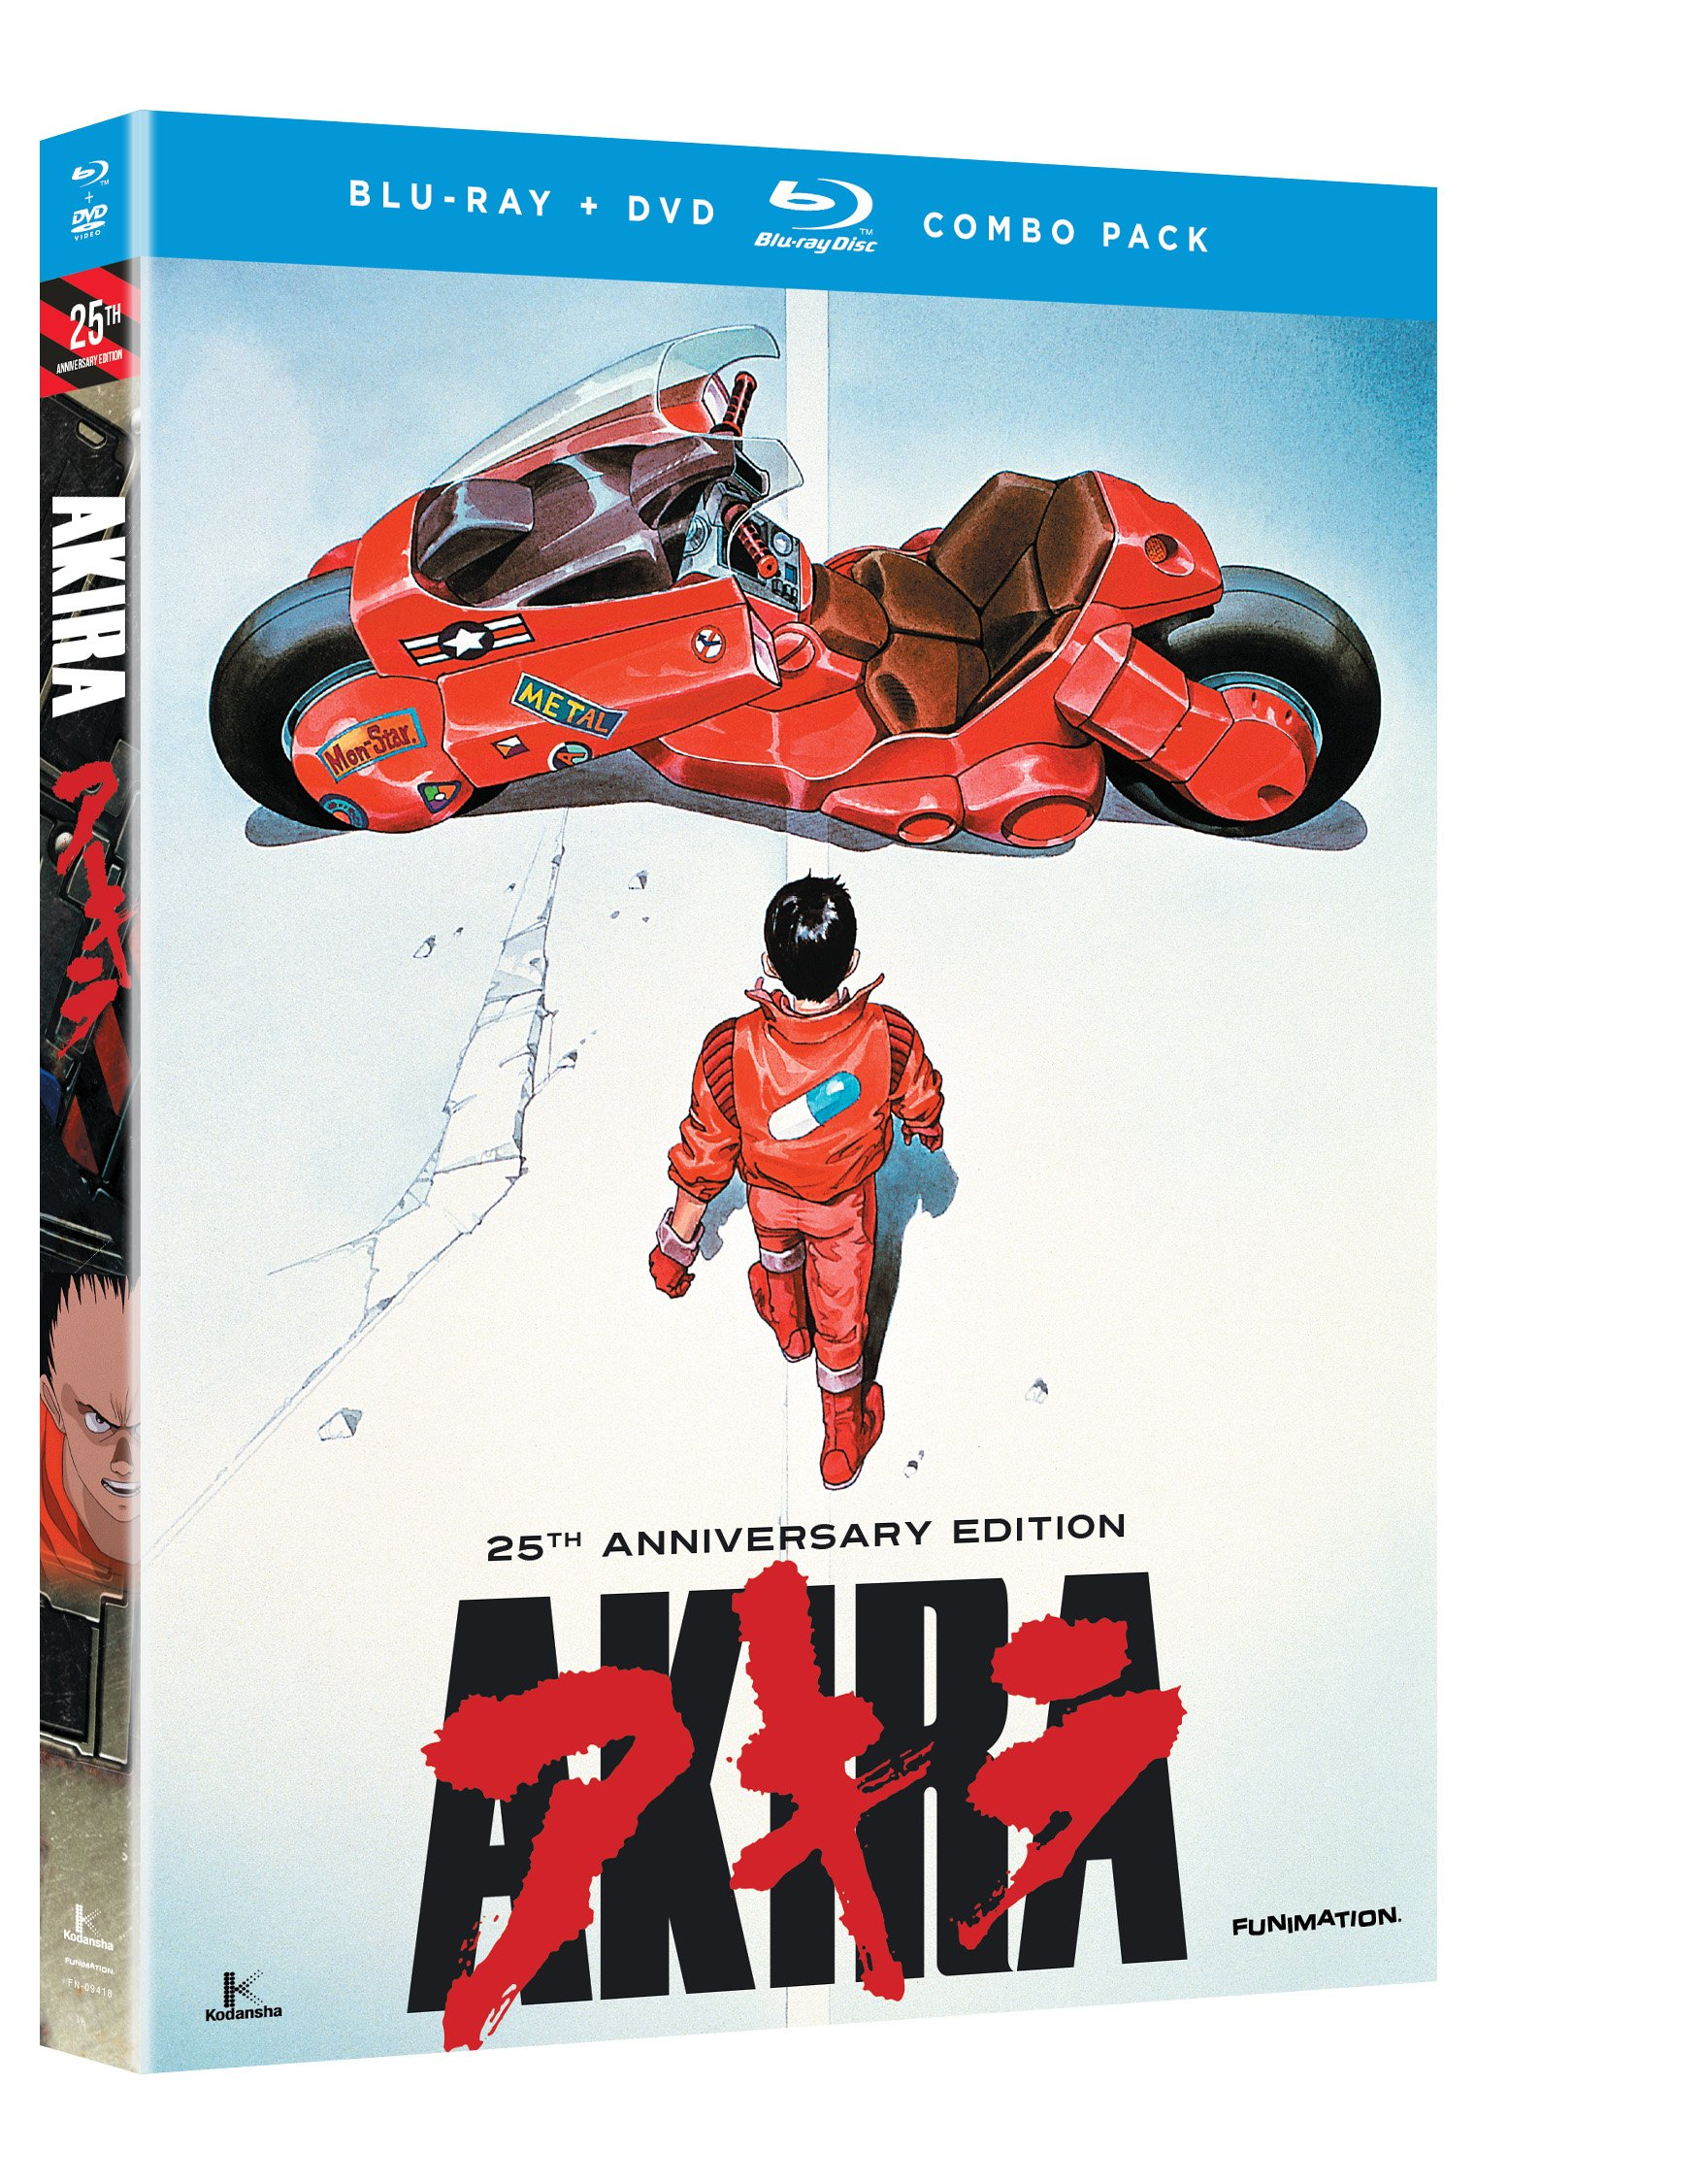 Blu-ray : Akira (With DVD, 2 Disc)